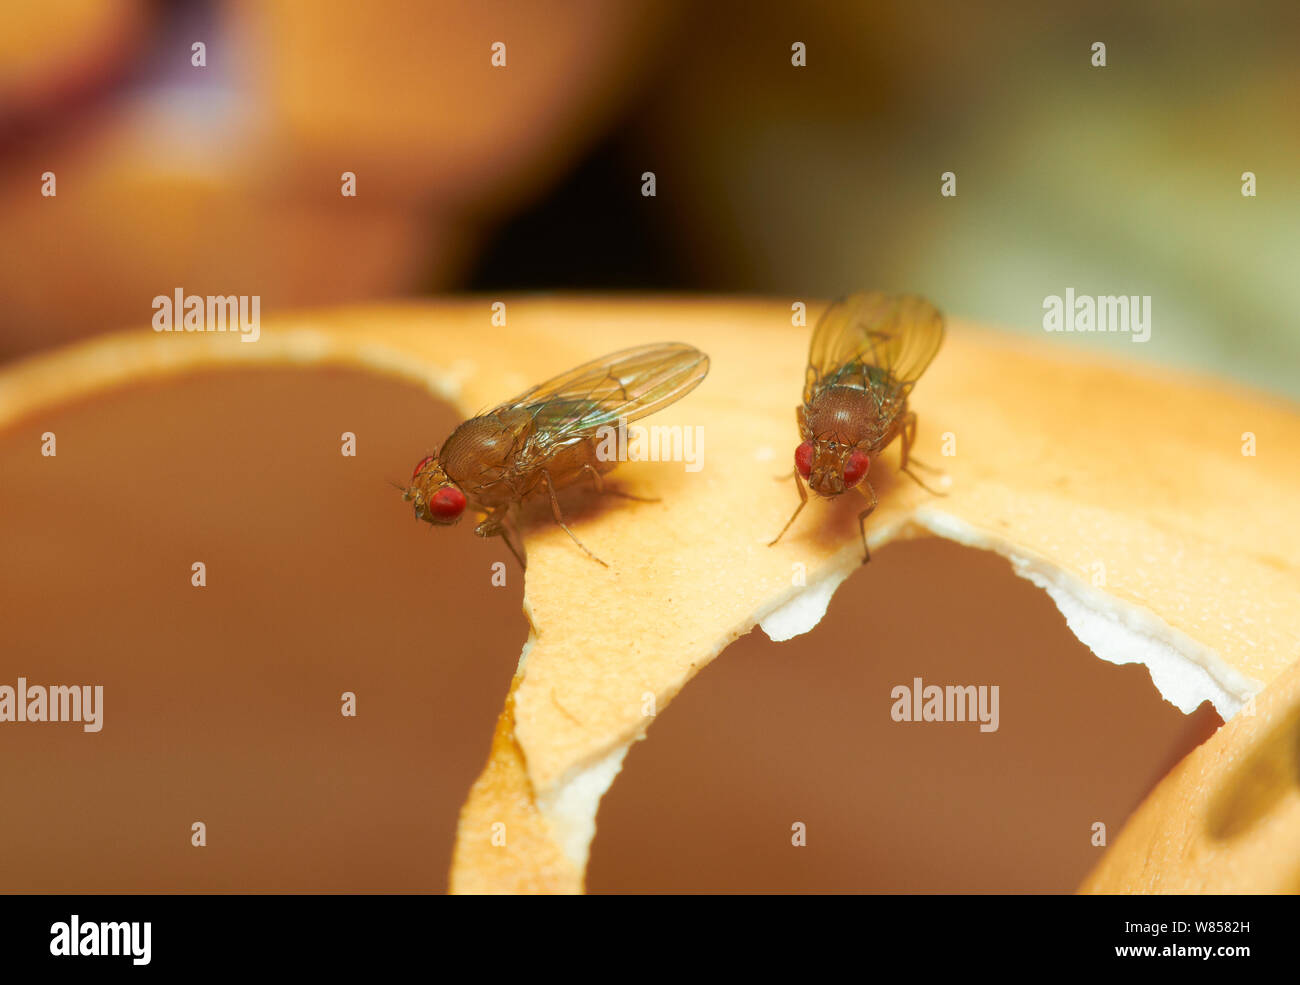 Fruit Fly Eggs Stock Photos & Fruit Fly Eggs Stock Images